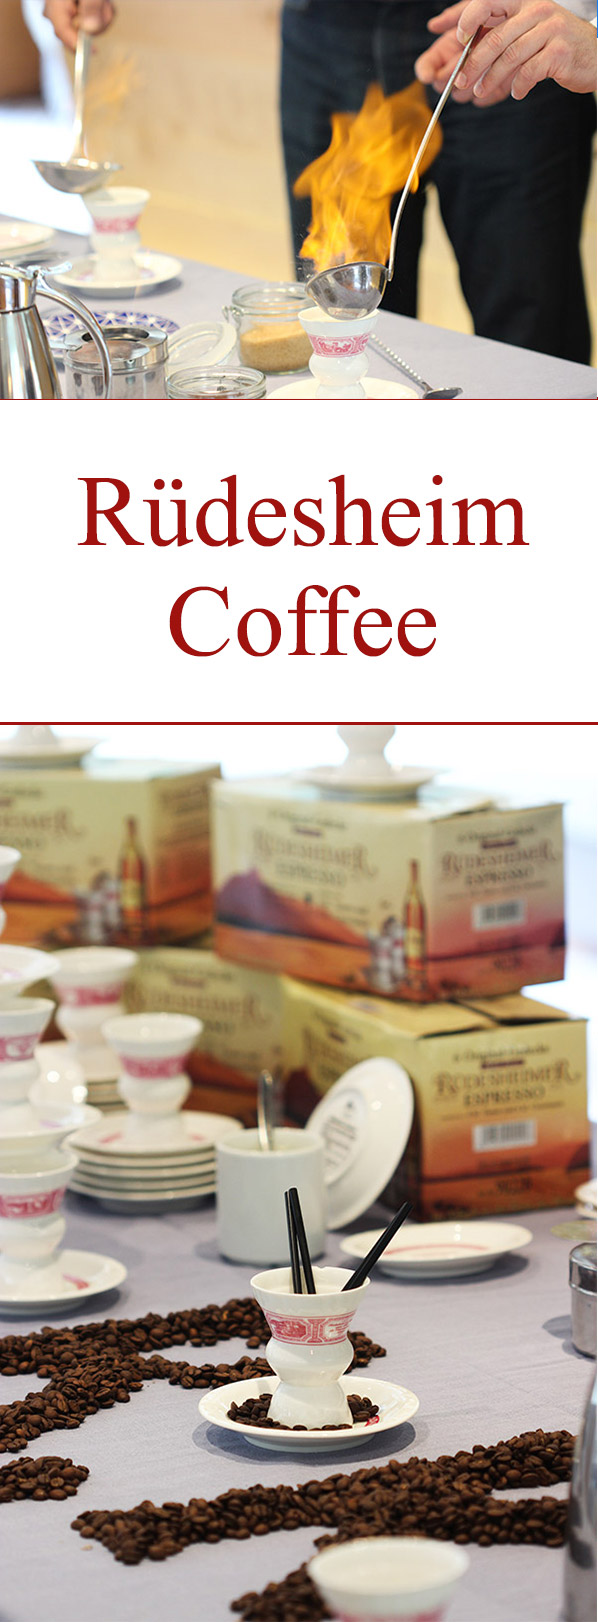 Rüdesheim Coffee is a unique German coffee cocktail featuring flambeed sweetened brandy topped with strong coffee, whipped cream and shaved chocolate.